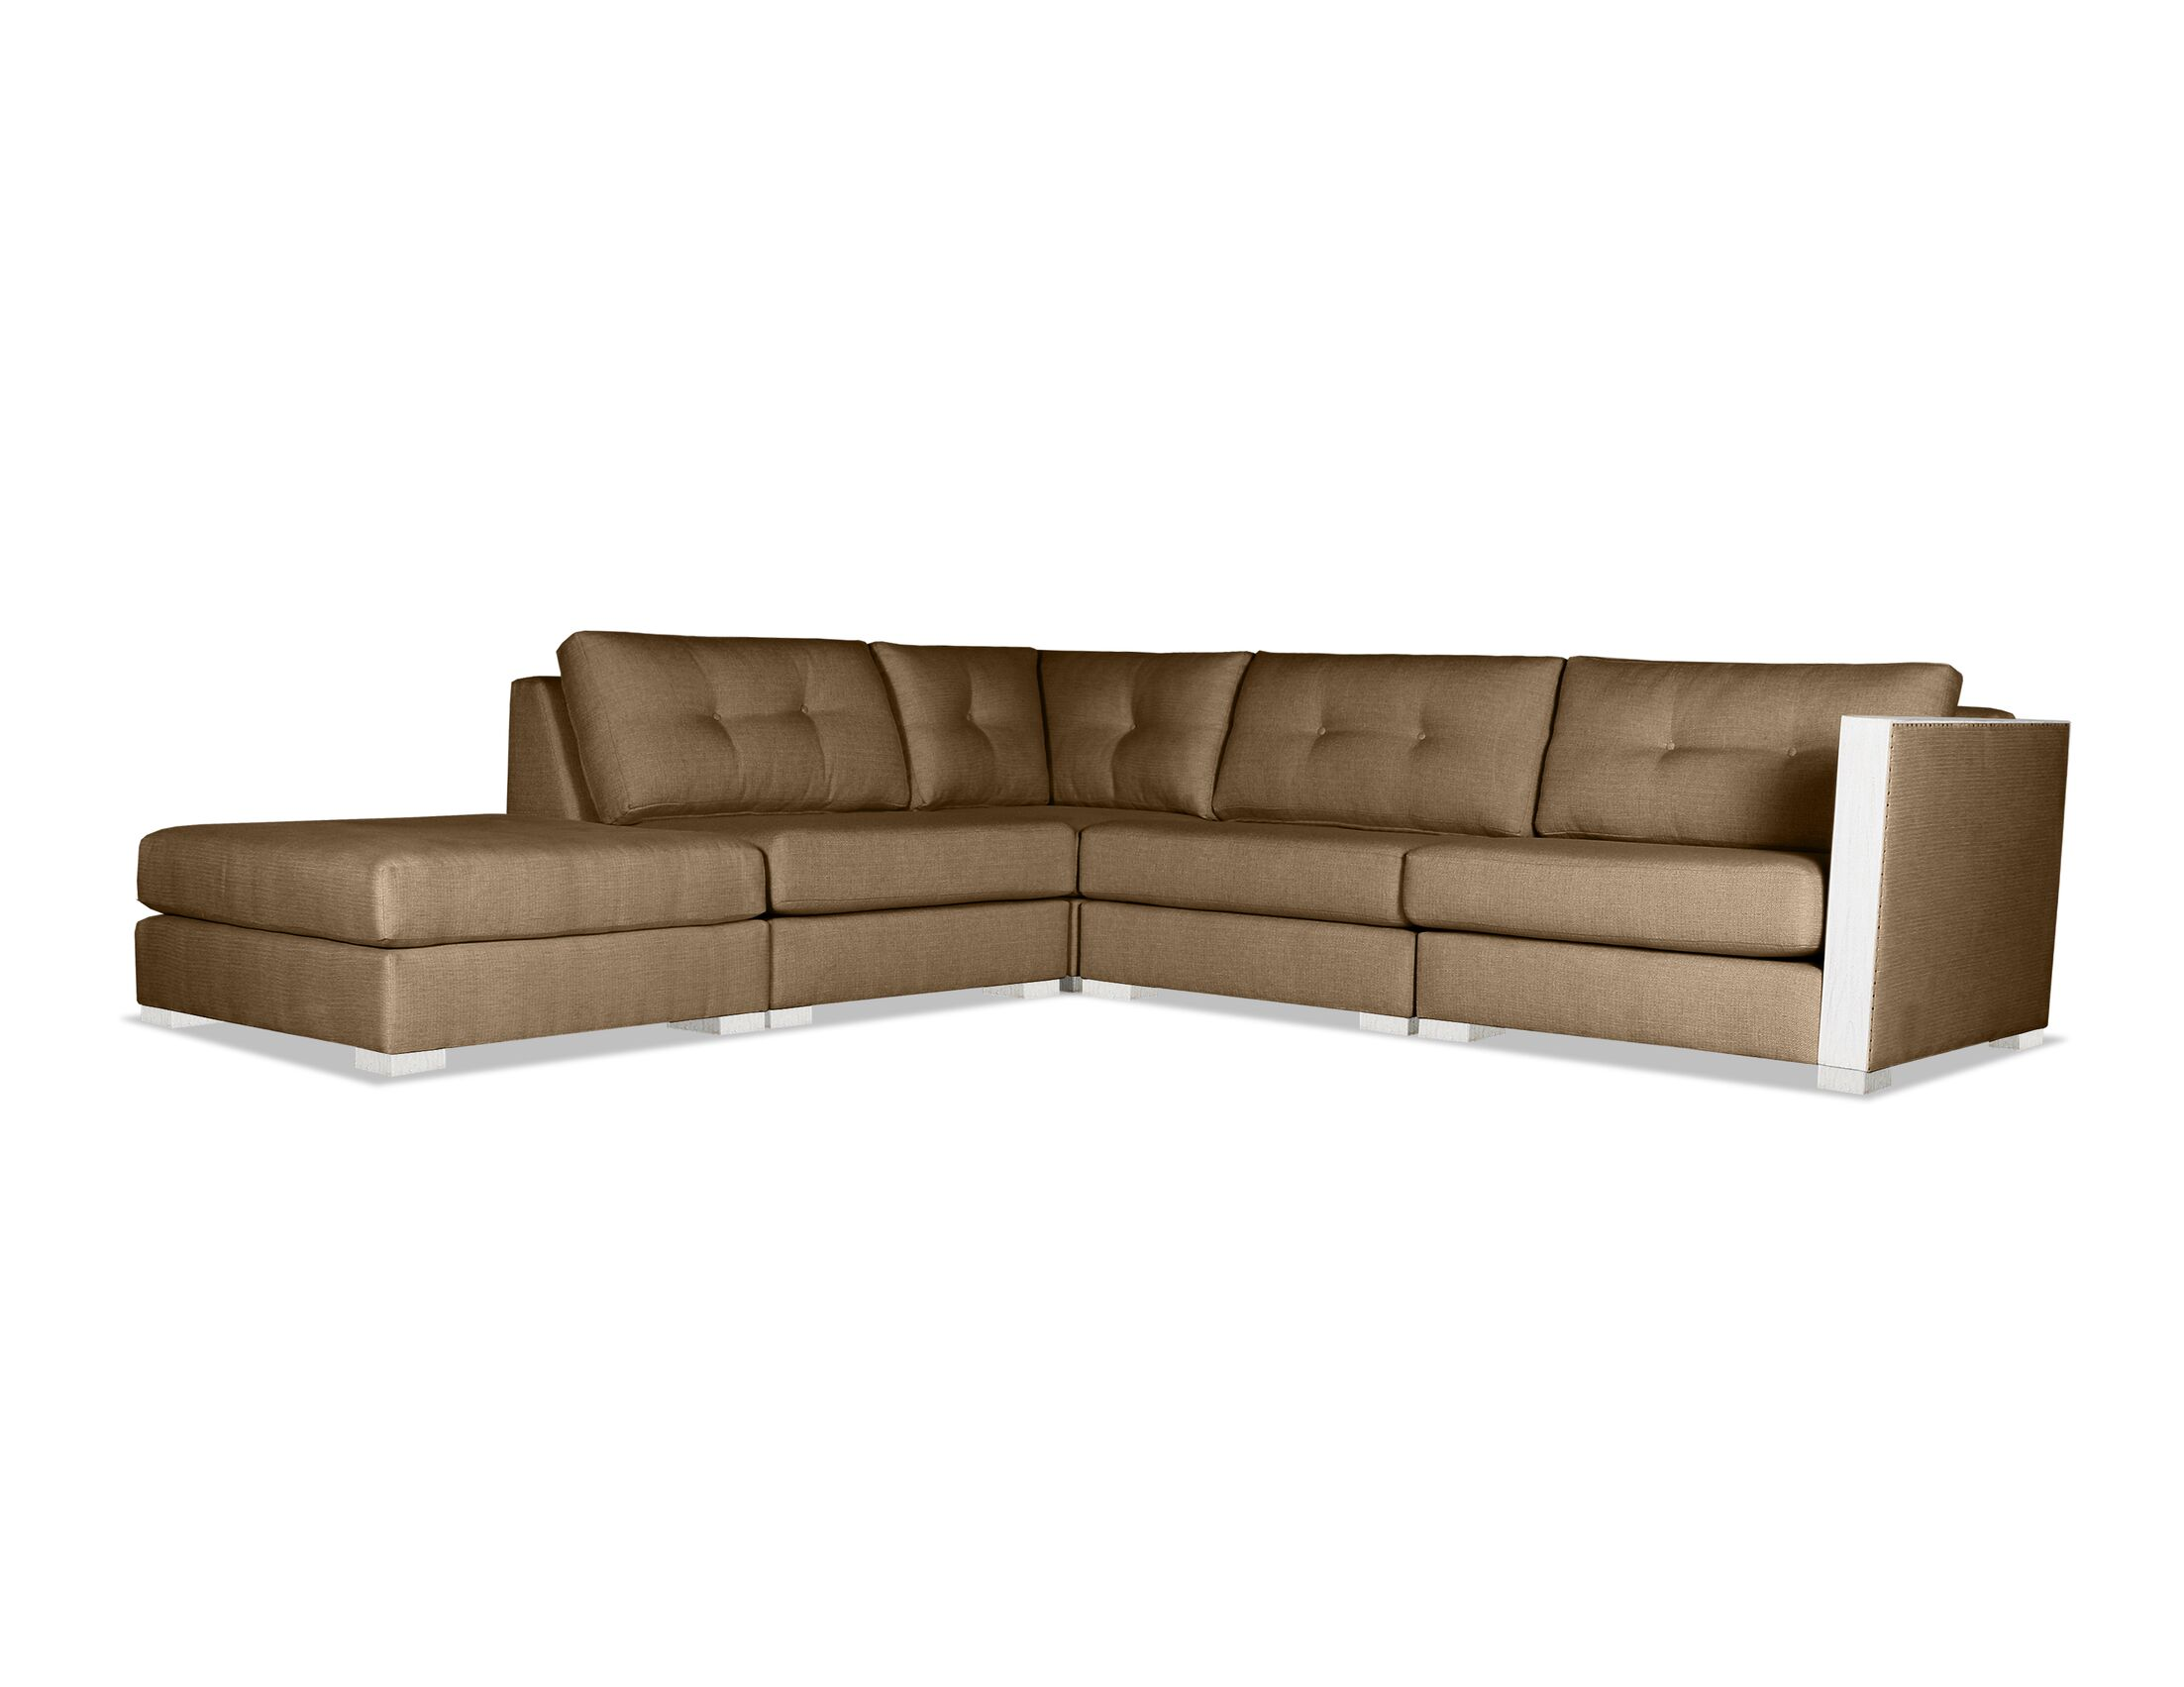 Steffi Modular Sectional with Ottoman Upholstery: Brown